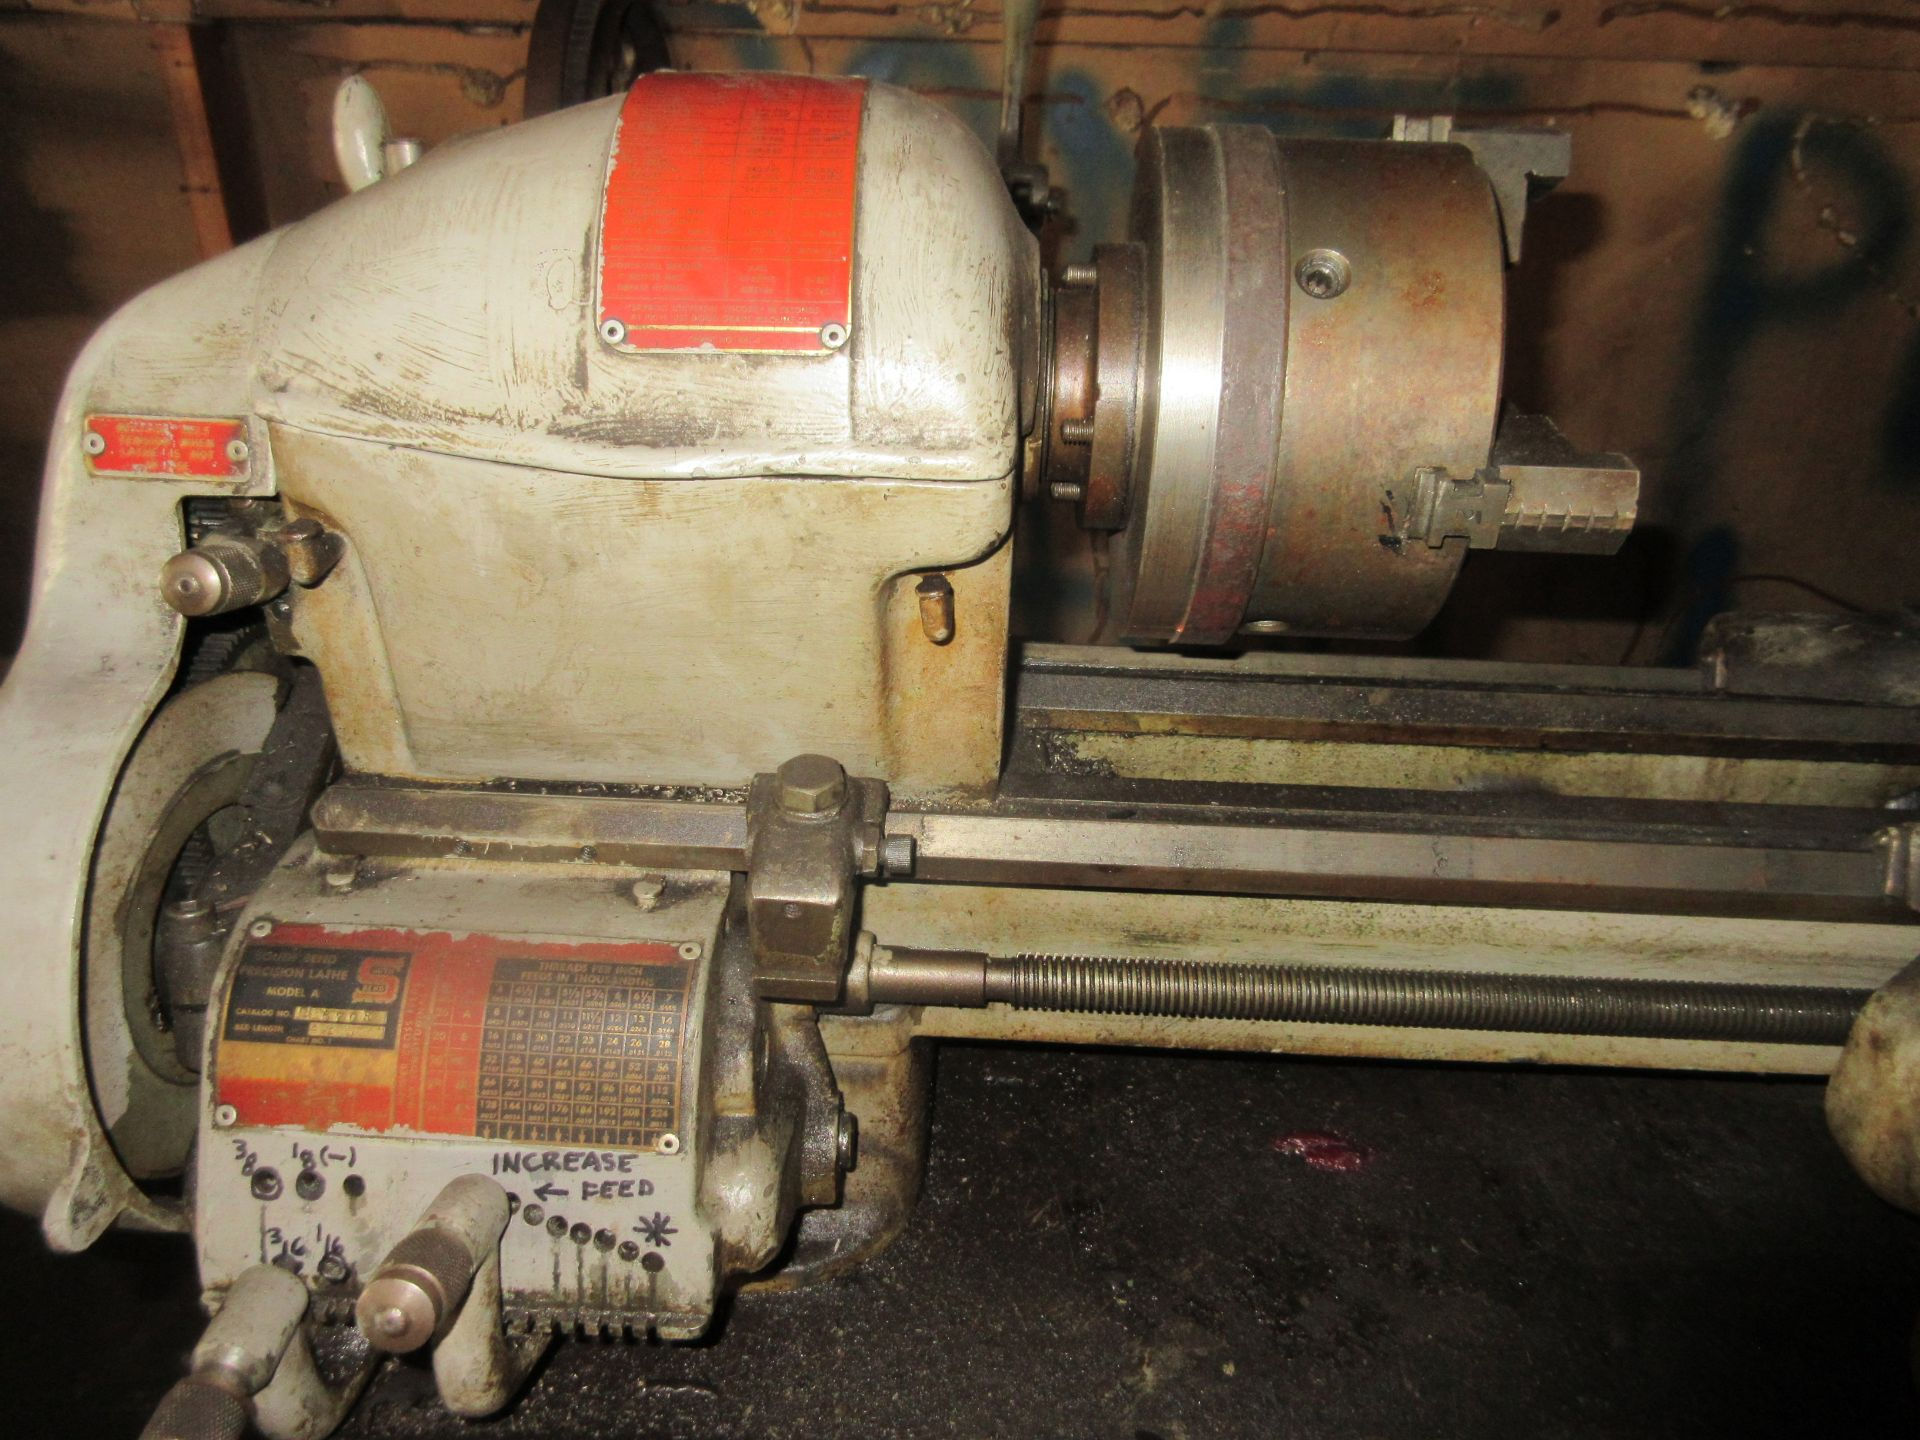 """(1) South Bend Model A Lathe, 6"""" 3 Jaw Chuck, Tailstock, S/N 30125 KAR - Image 3 of 3"""